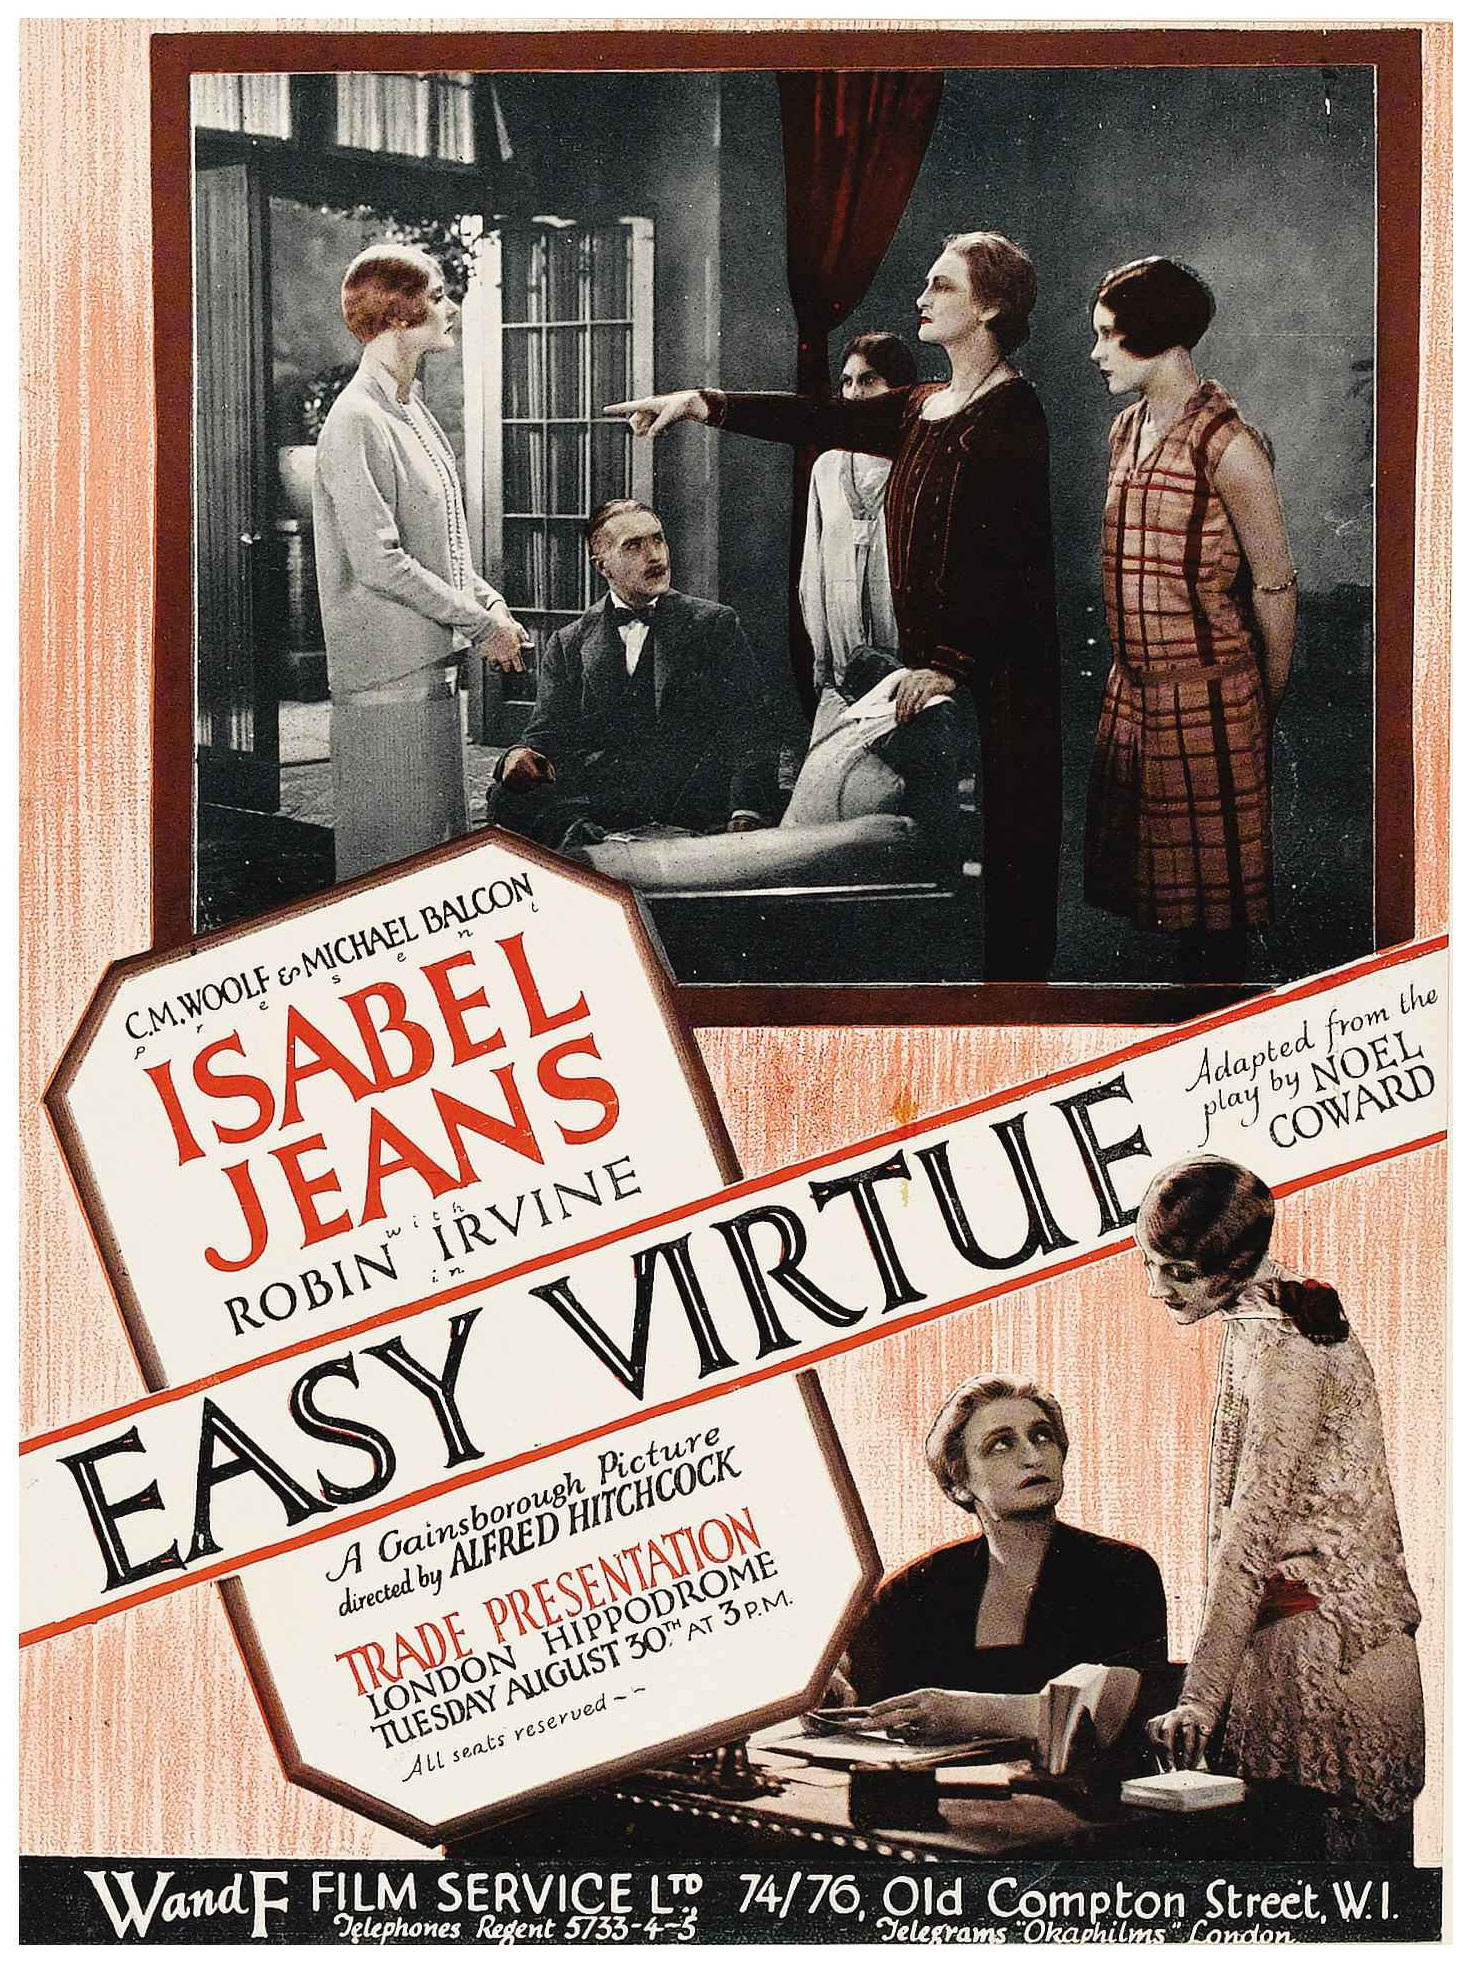 Easy Virtue (1927, dir. Alfred Hitchcock) UK trade magazine ad